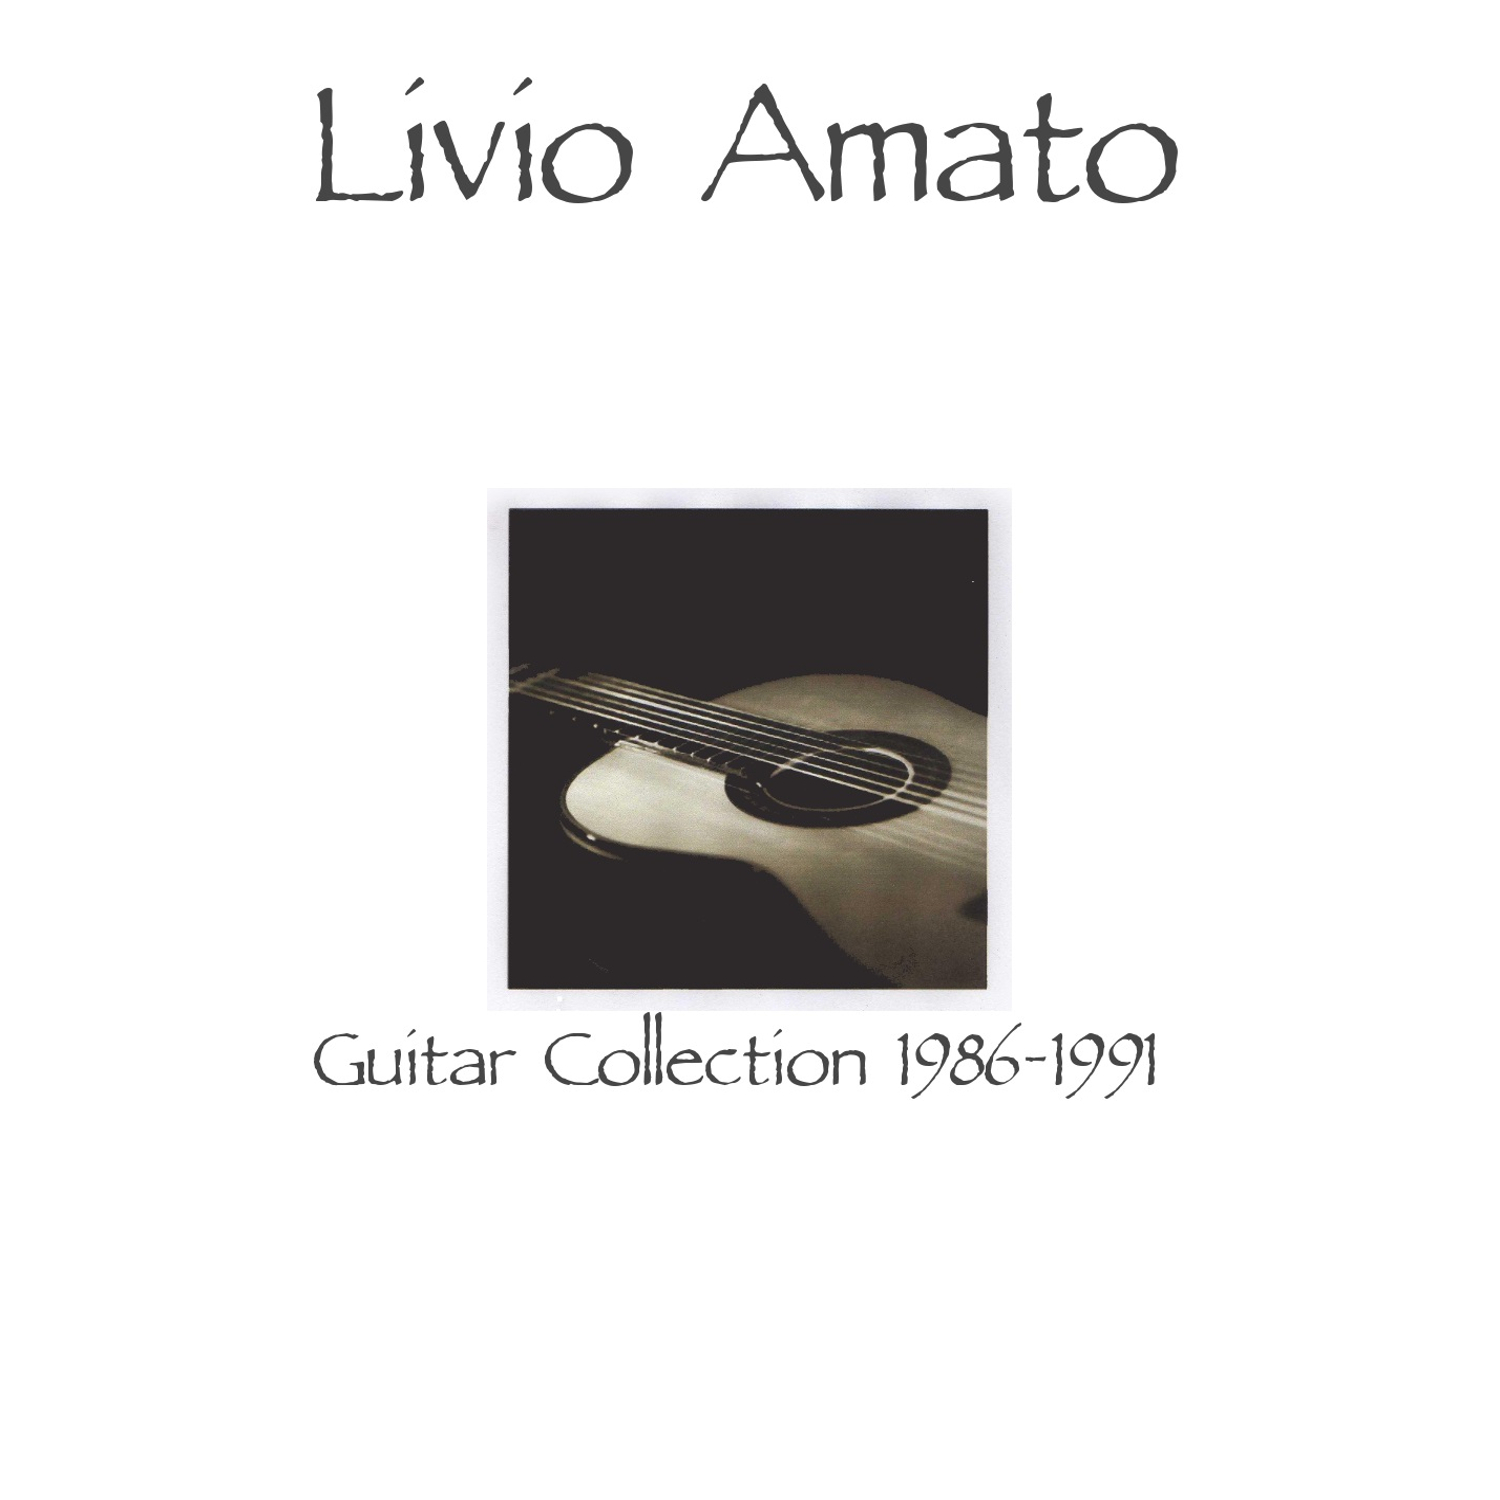 Livio Amato Guitar Collection